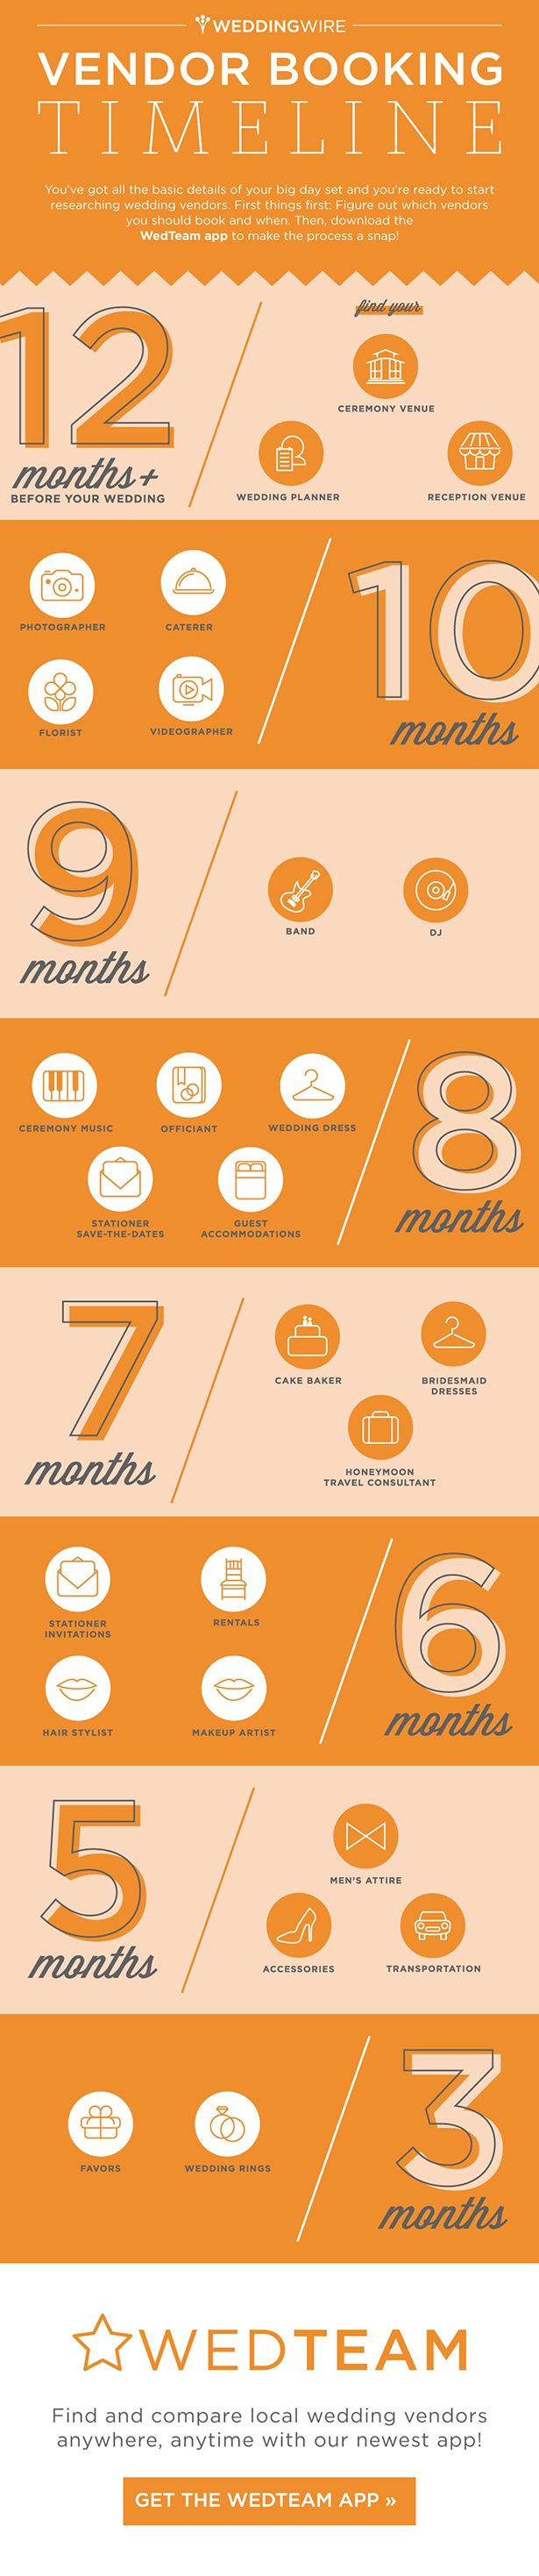 Vendor Booking Timeline Infographic